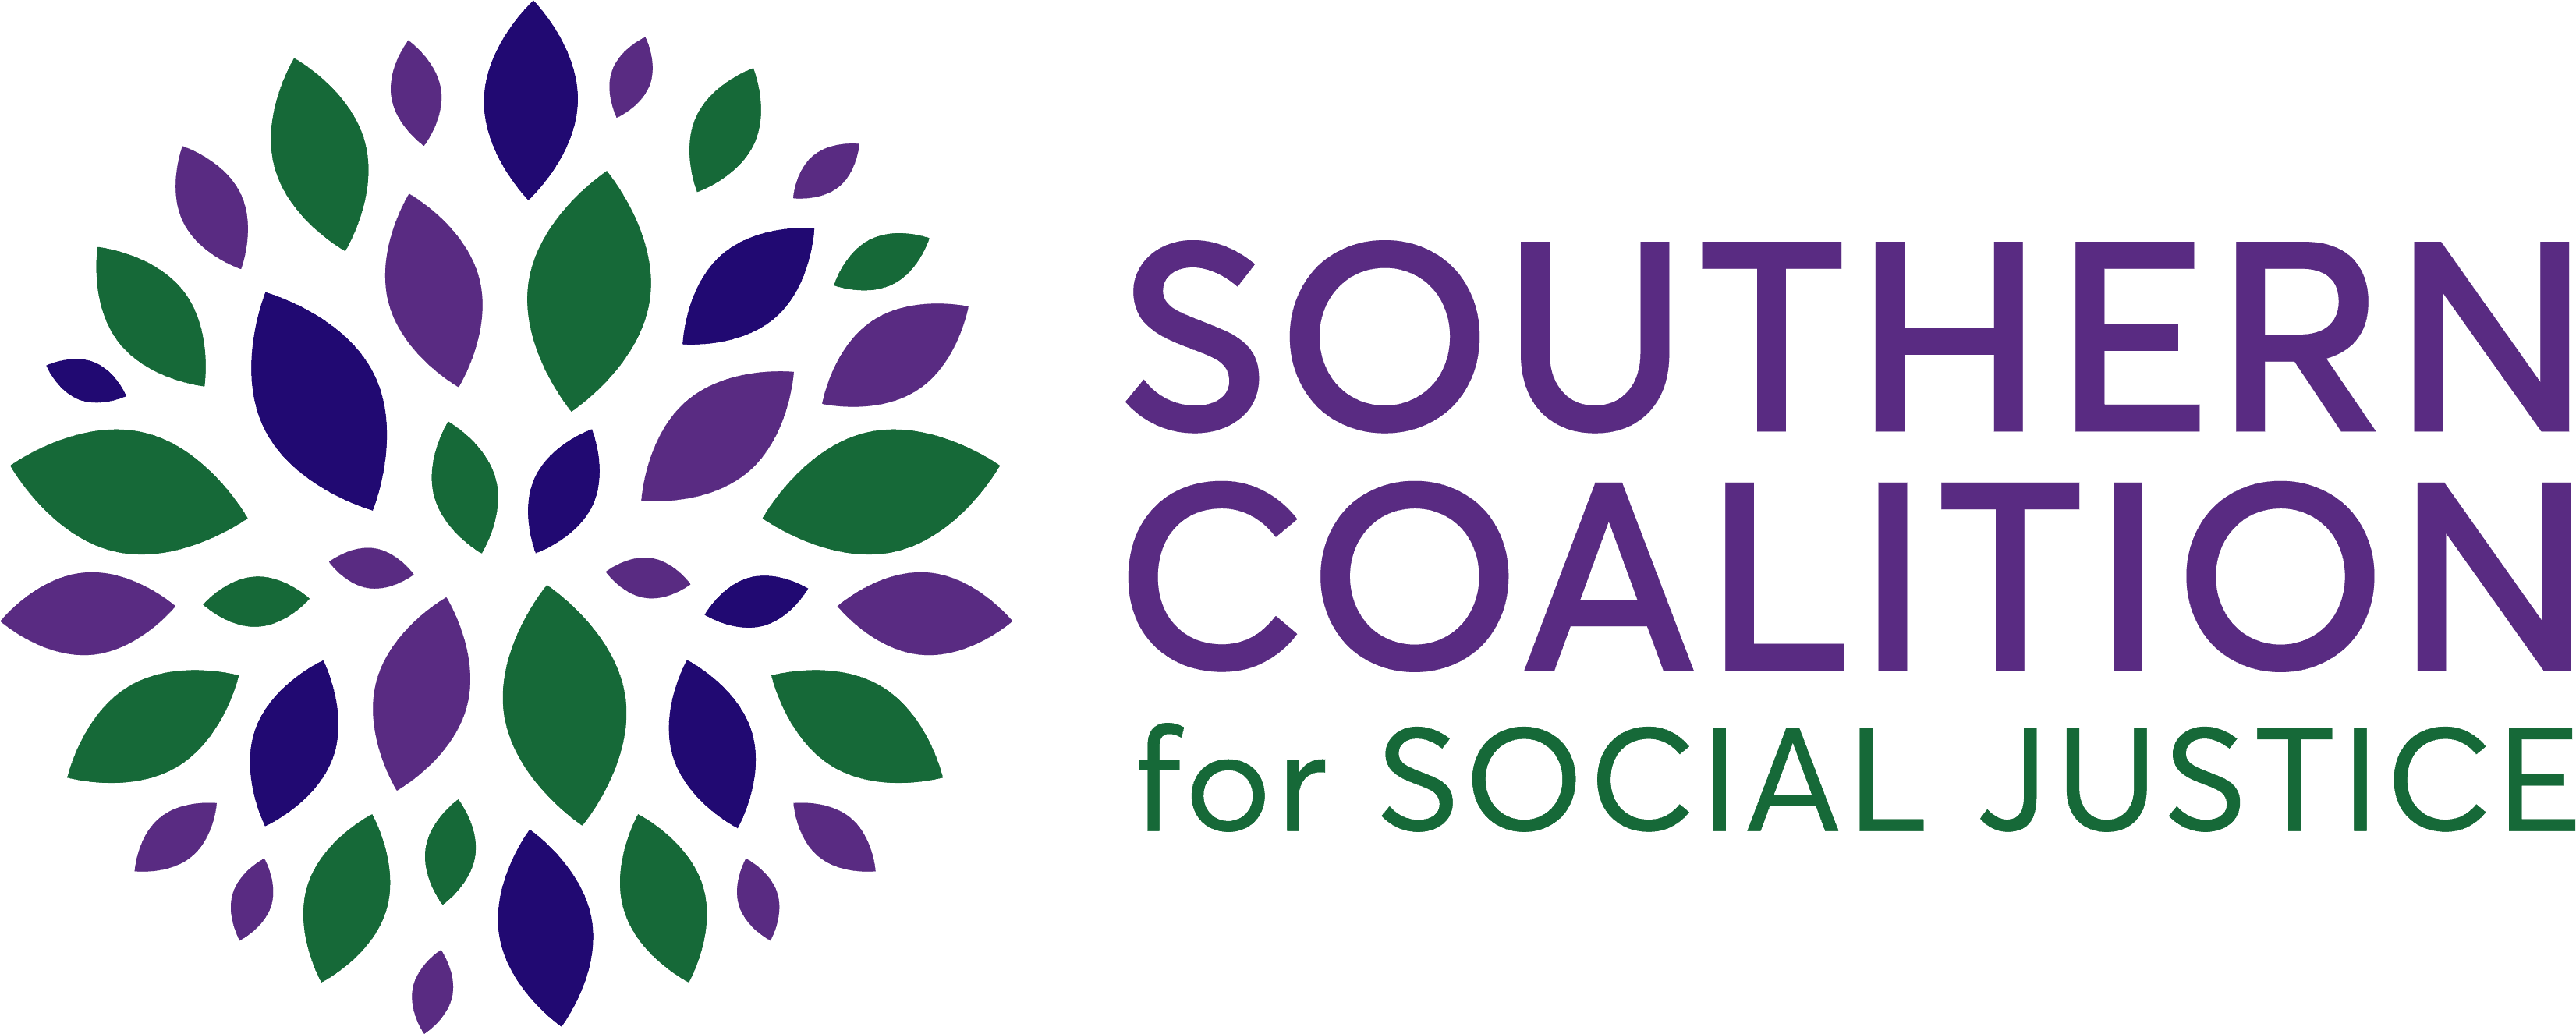 Southern Coalition for Social Justice